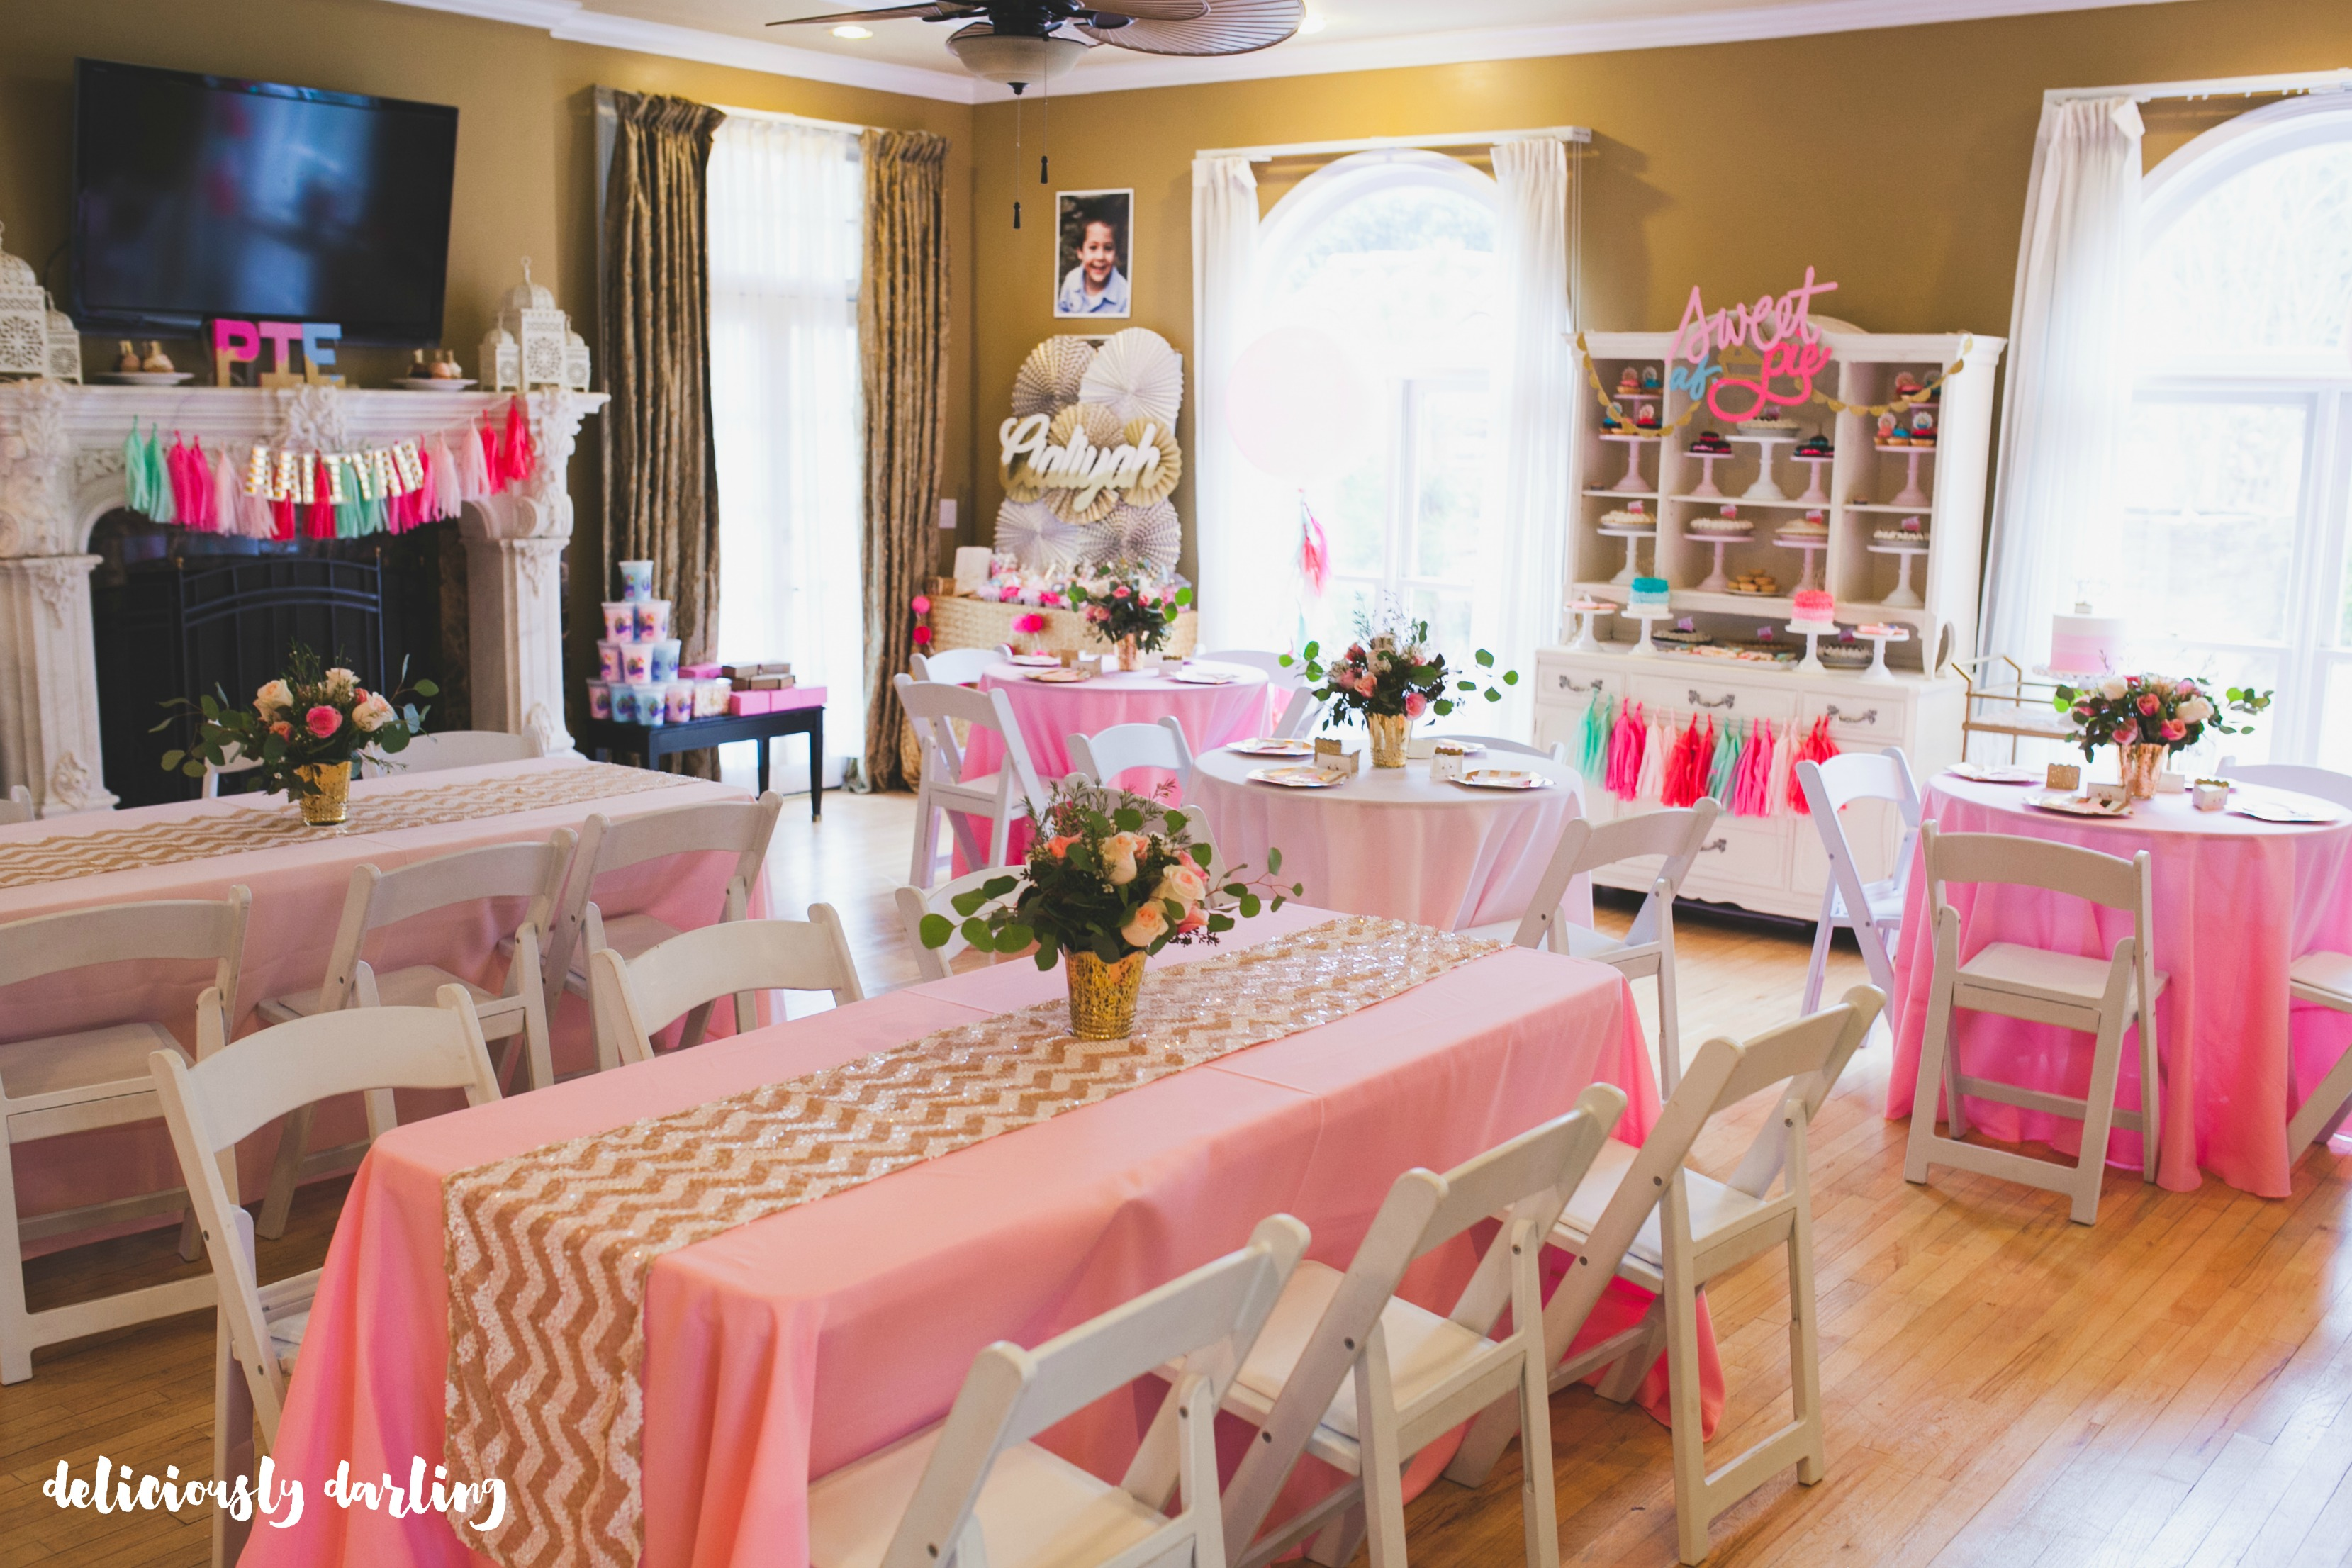 themed birthday party ideas for baby girl ; DeliciouslyDarling_Sweet_as_Pie_Party_1